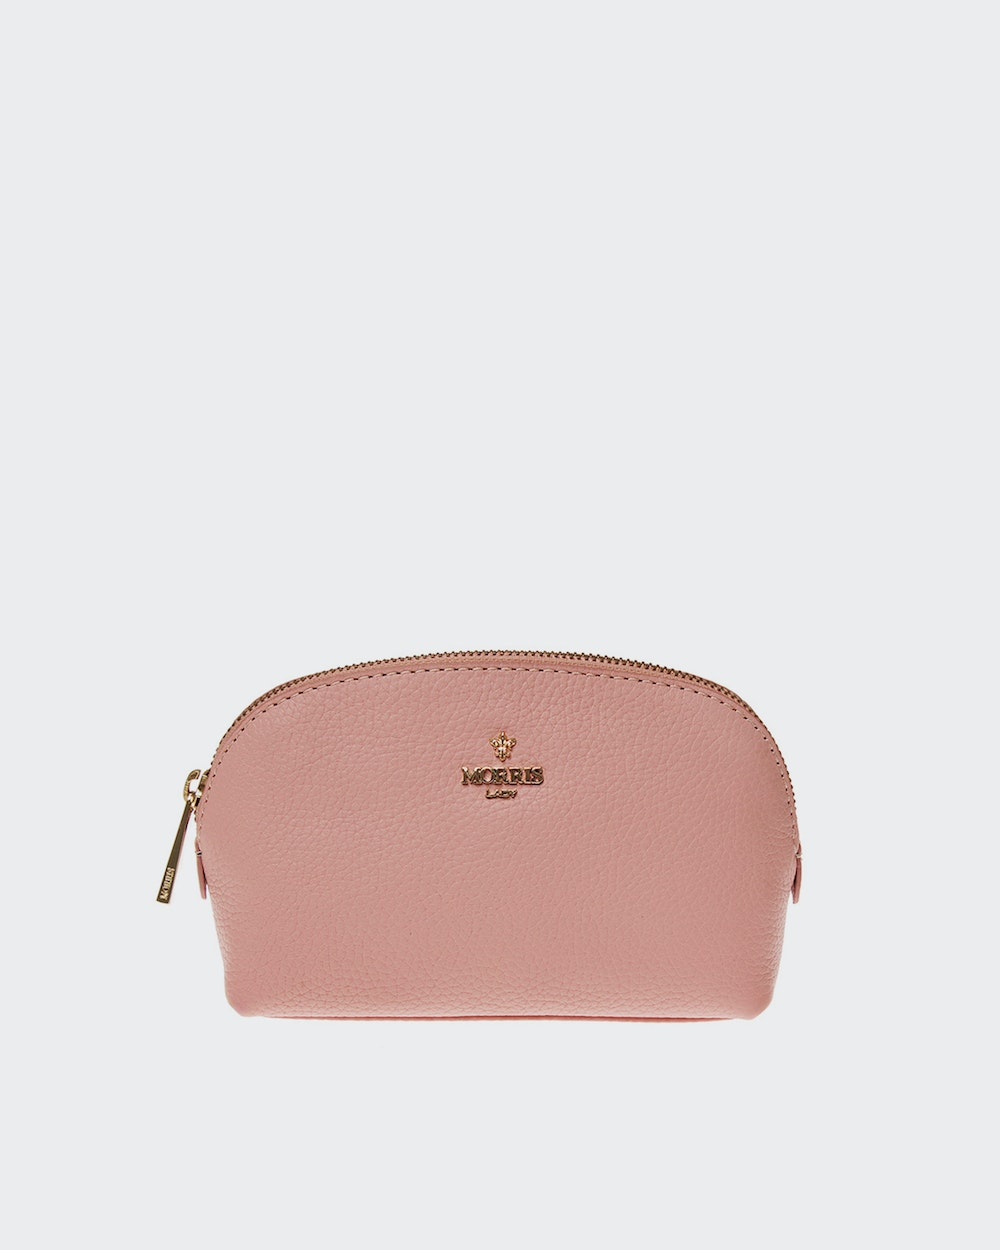 Lauren make up bag Pink Morris